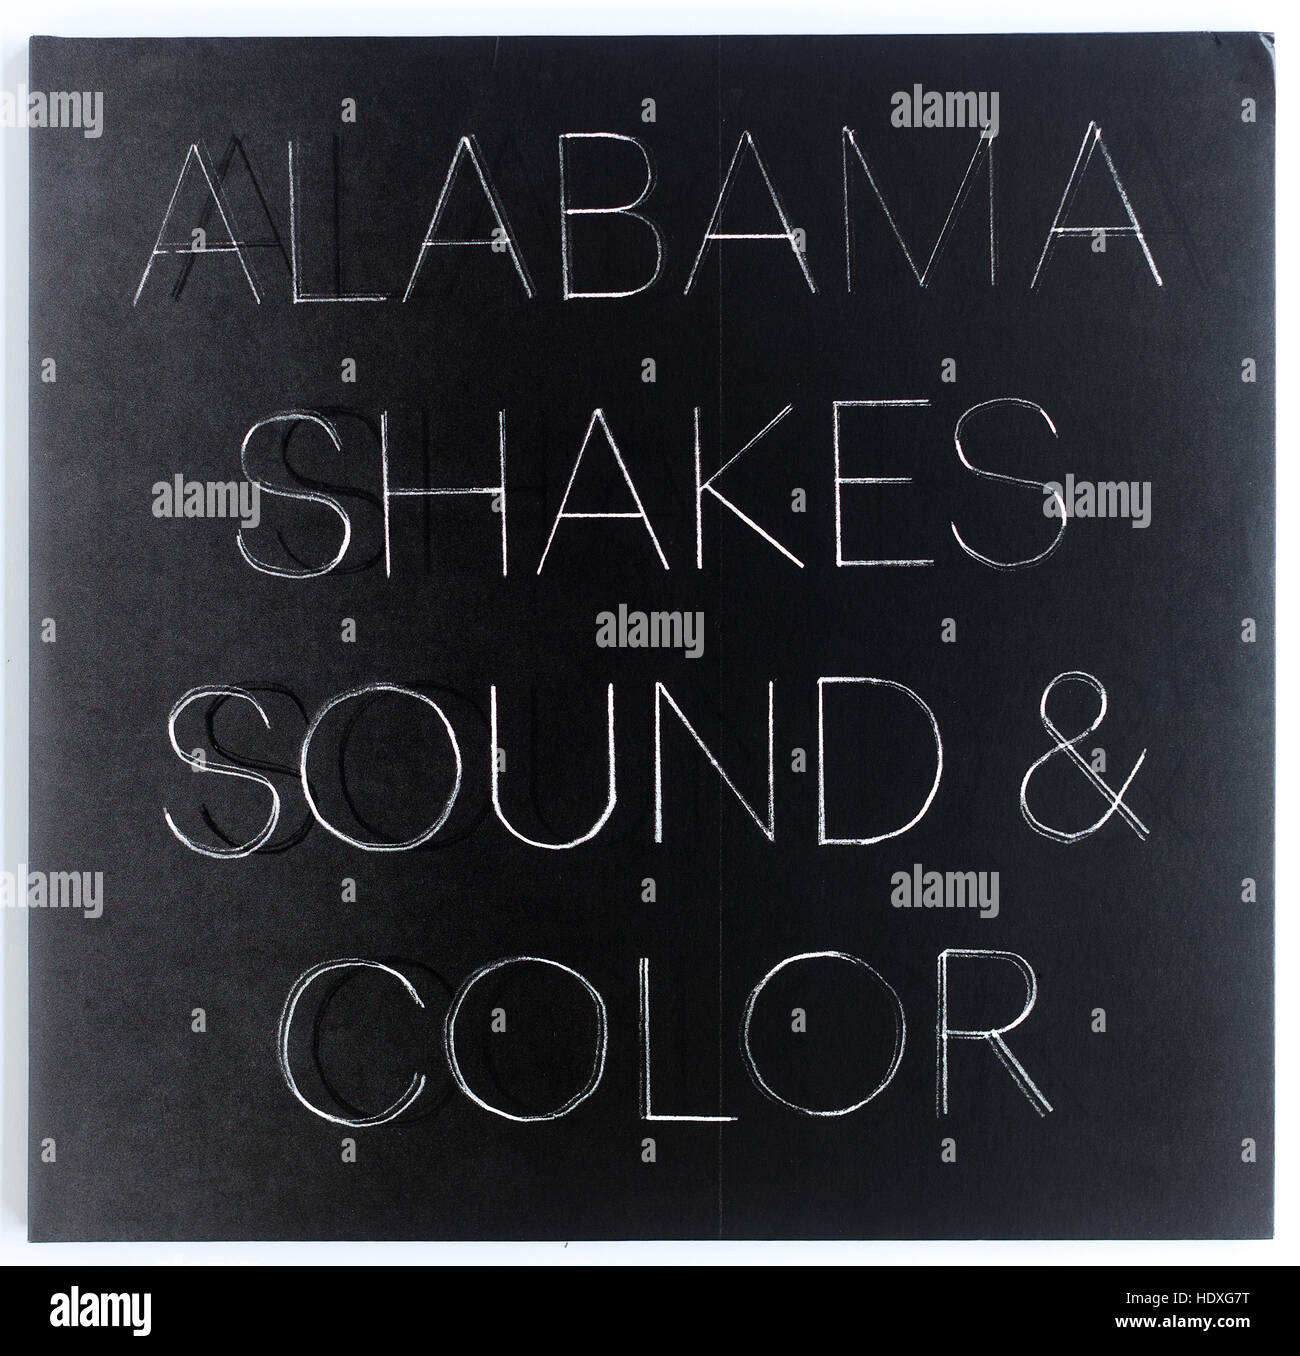 The cover of 'Sound And Color', 2015 album by Alabama Shakes Stock Photo